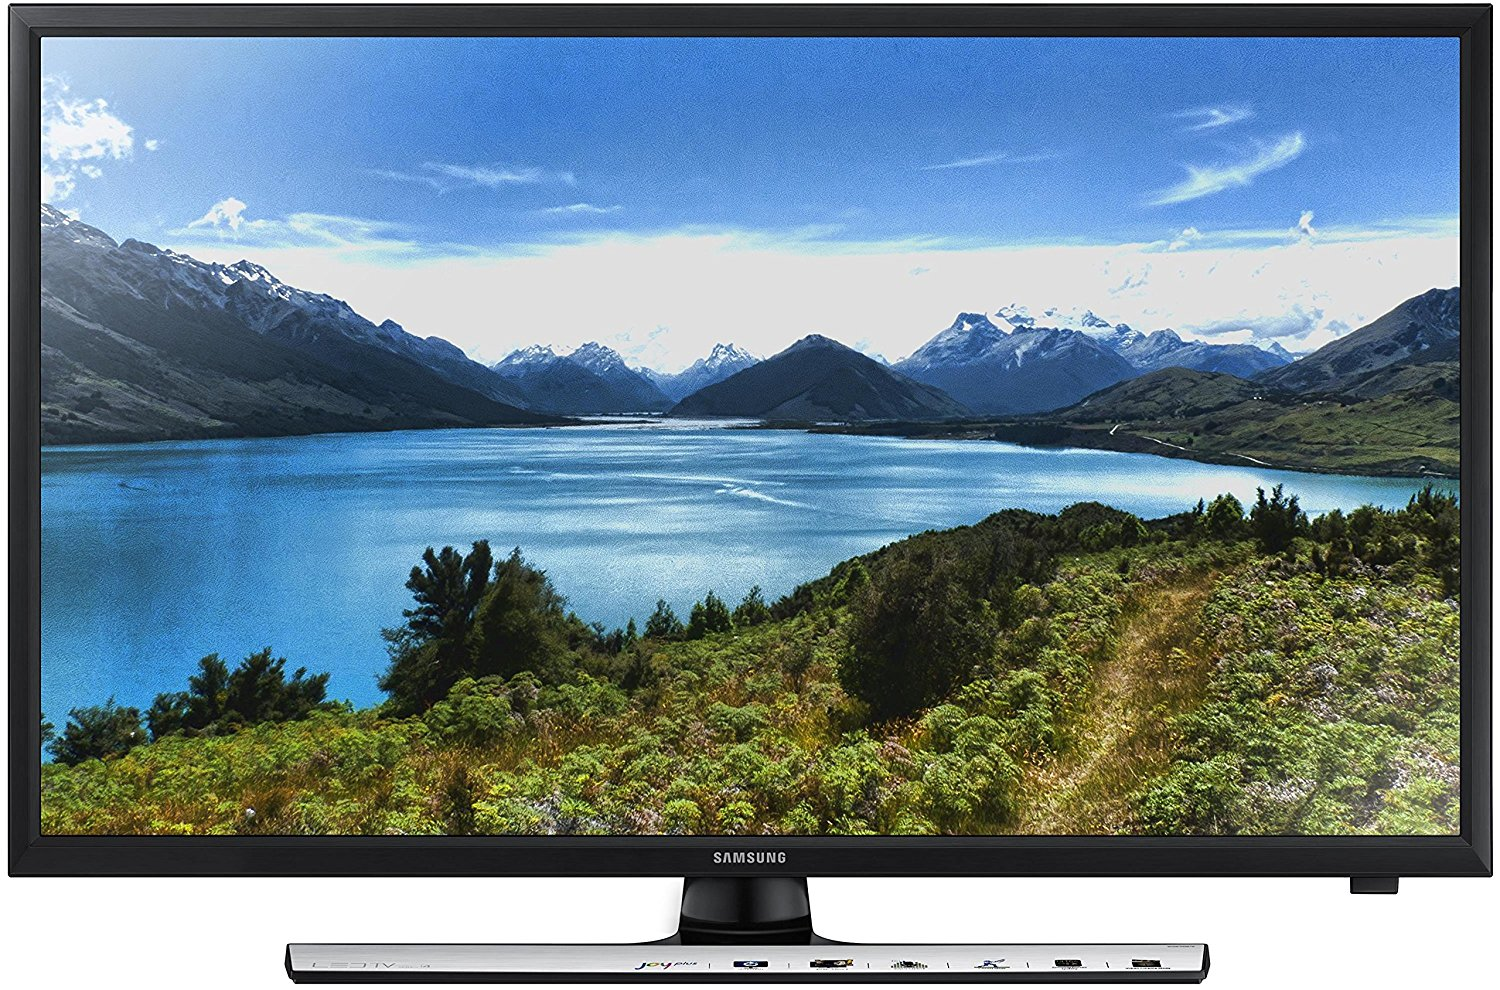 Samsung 24 inches LED TV (Black)